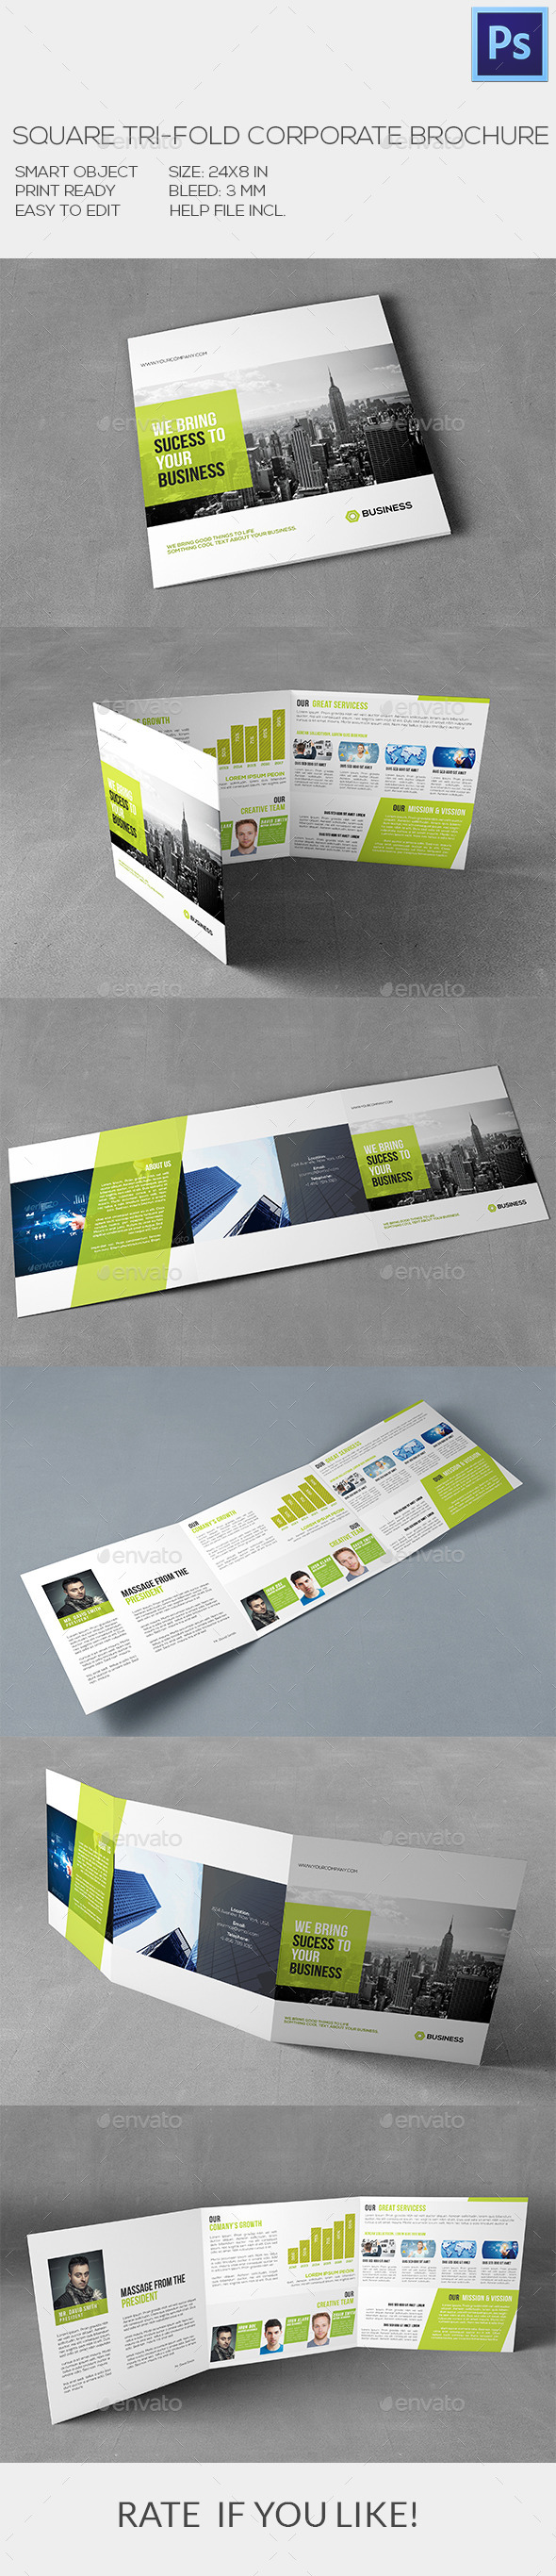 Square Corporate Brochure - Corporate Brochures